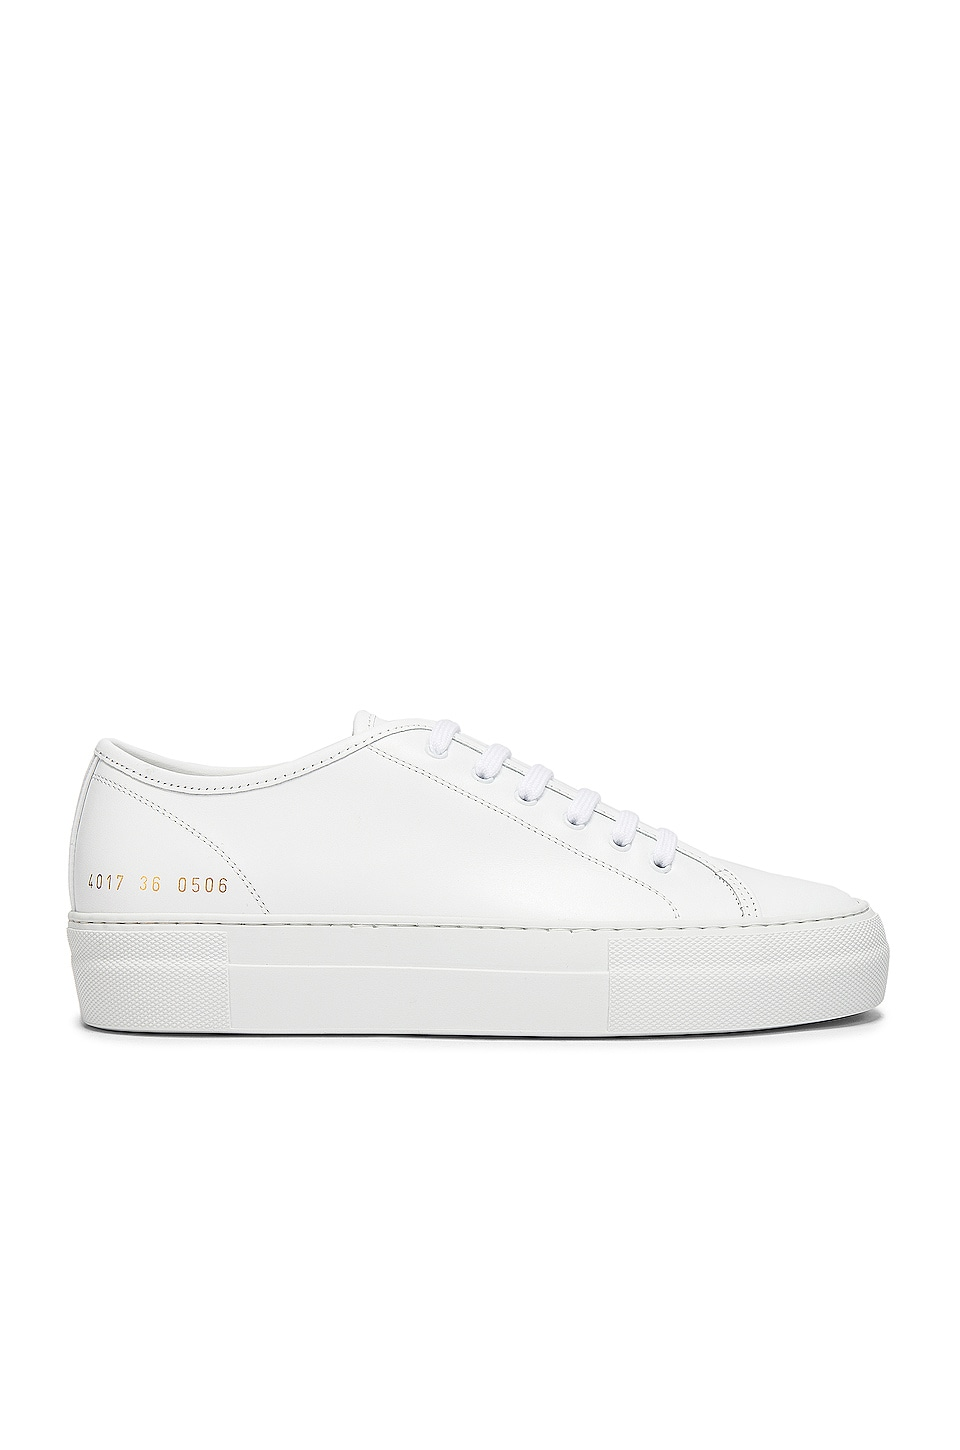 Common Projects Tournament Low Platform Super Sneaker in White